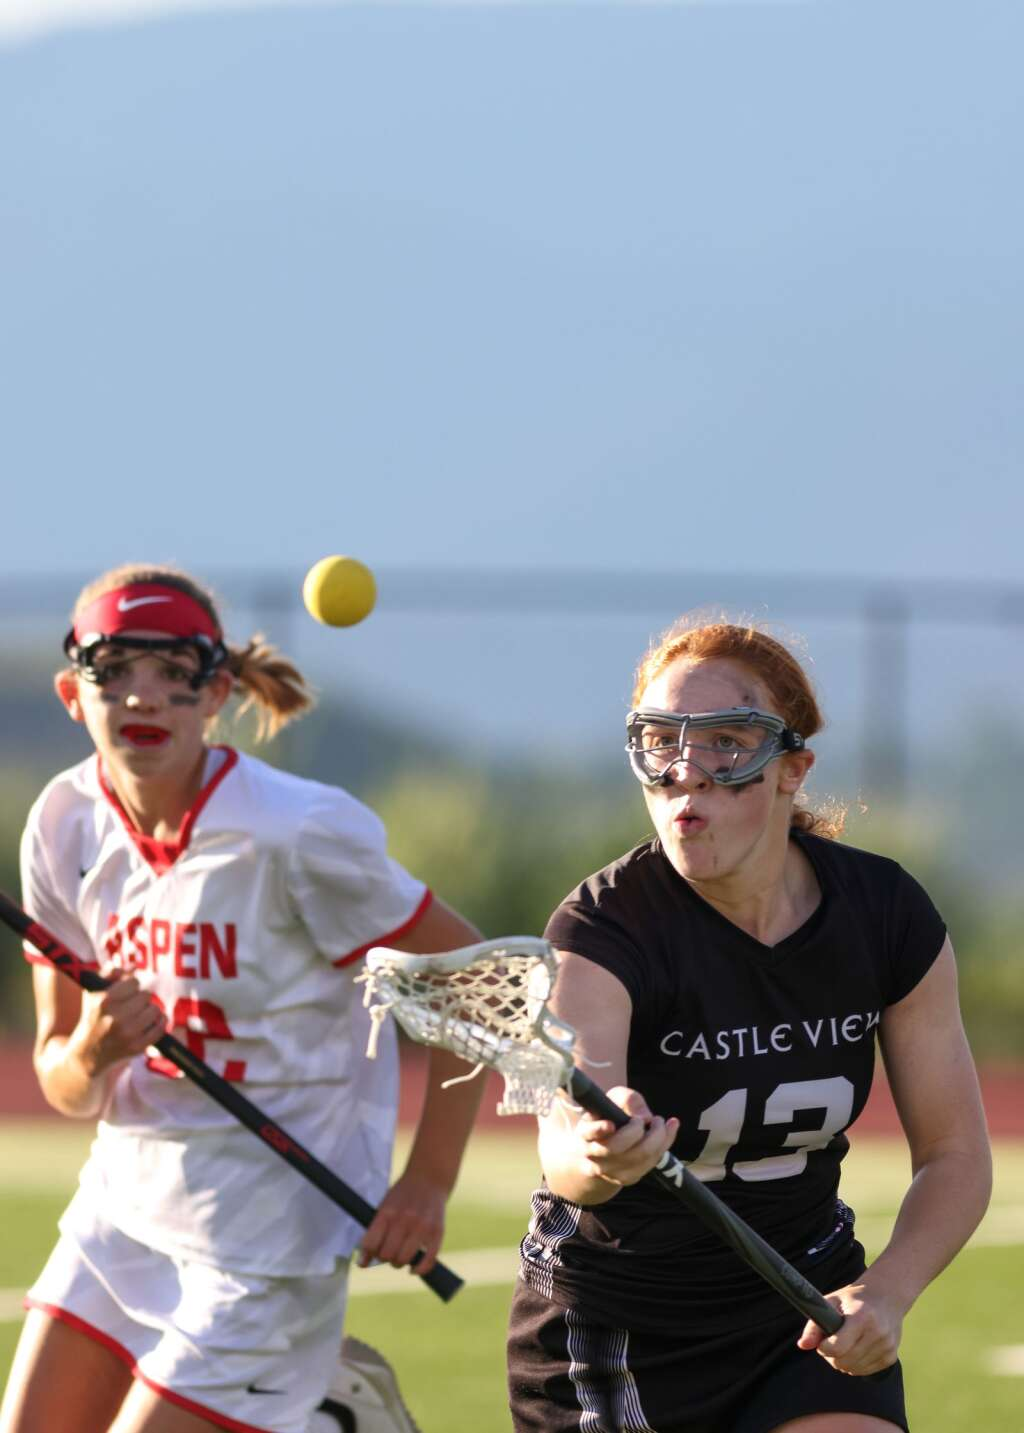 Aspen High School's Michaela Kenny, left, defends in the girls lacrosse game against Castle View in the Class 4A state quarterfinals on Saturday, June 19, 2021, on the AHS turf. The Sabercats won, 10-9. Photo by Austin Colbert/The Aspen Times.